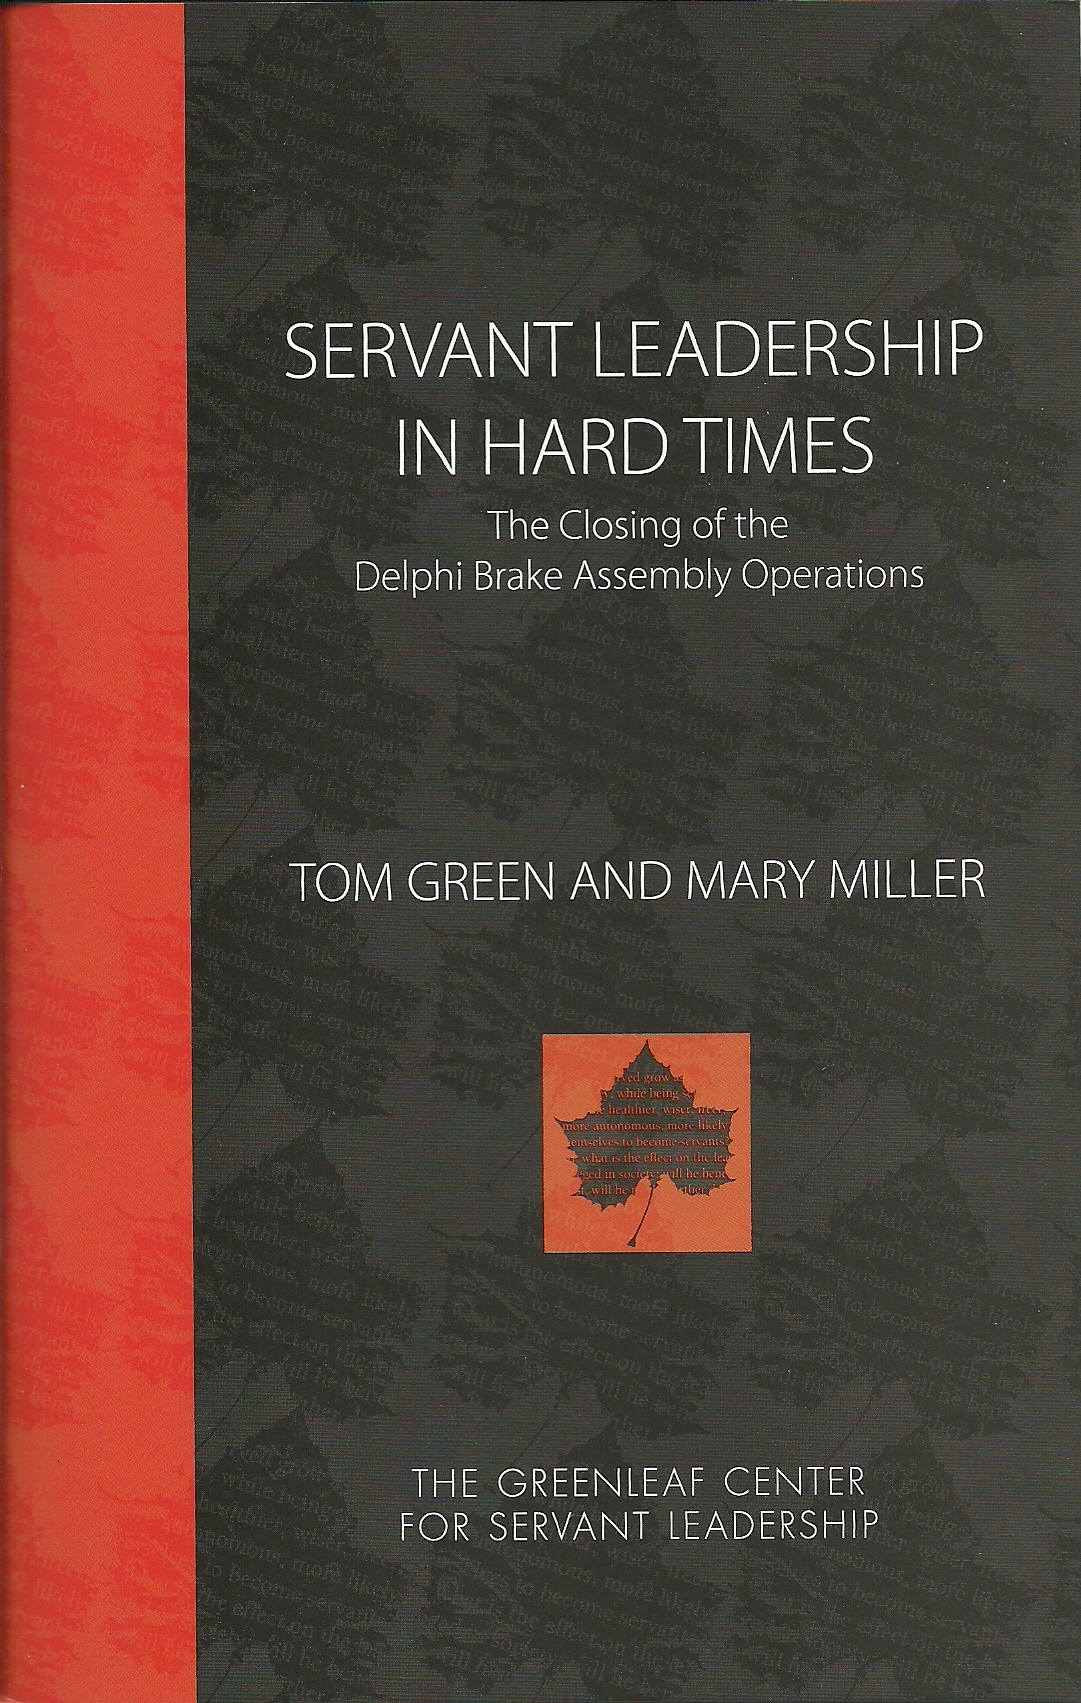 SERVANT LEADERSHIP IN HARD TIMES E-book